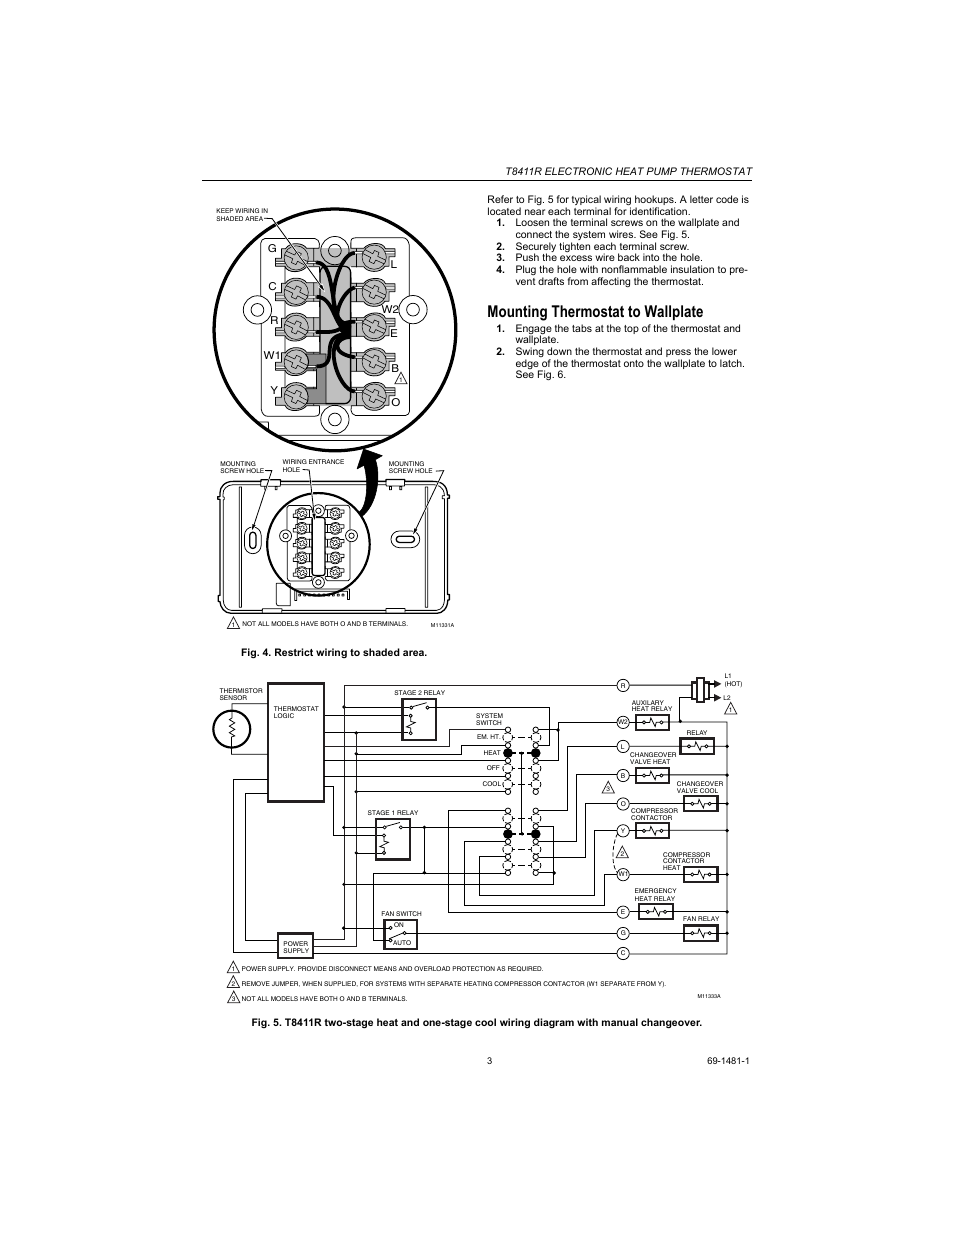 honeywell thermostat t8011r wiring diagram honeywell automotive honeywell thermostat t8011r wiring diagram honeywell automotive wiring diagrams